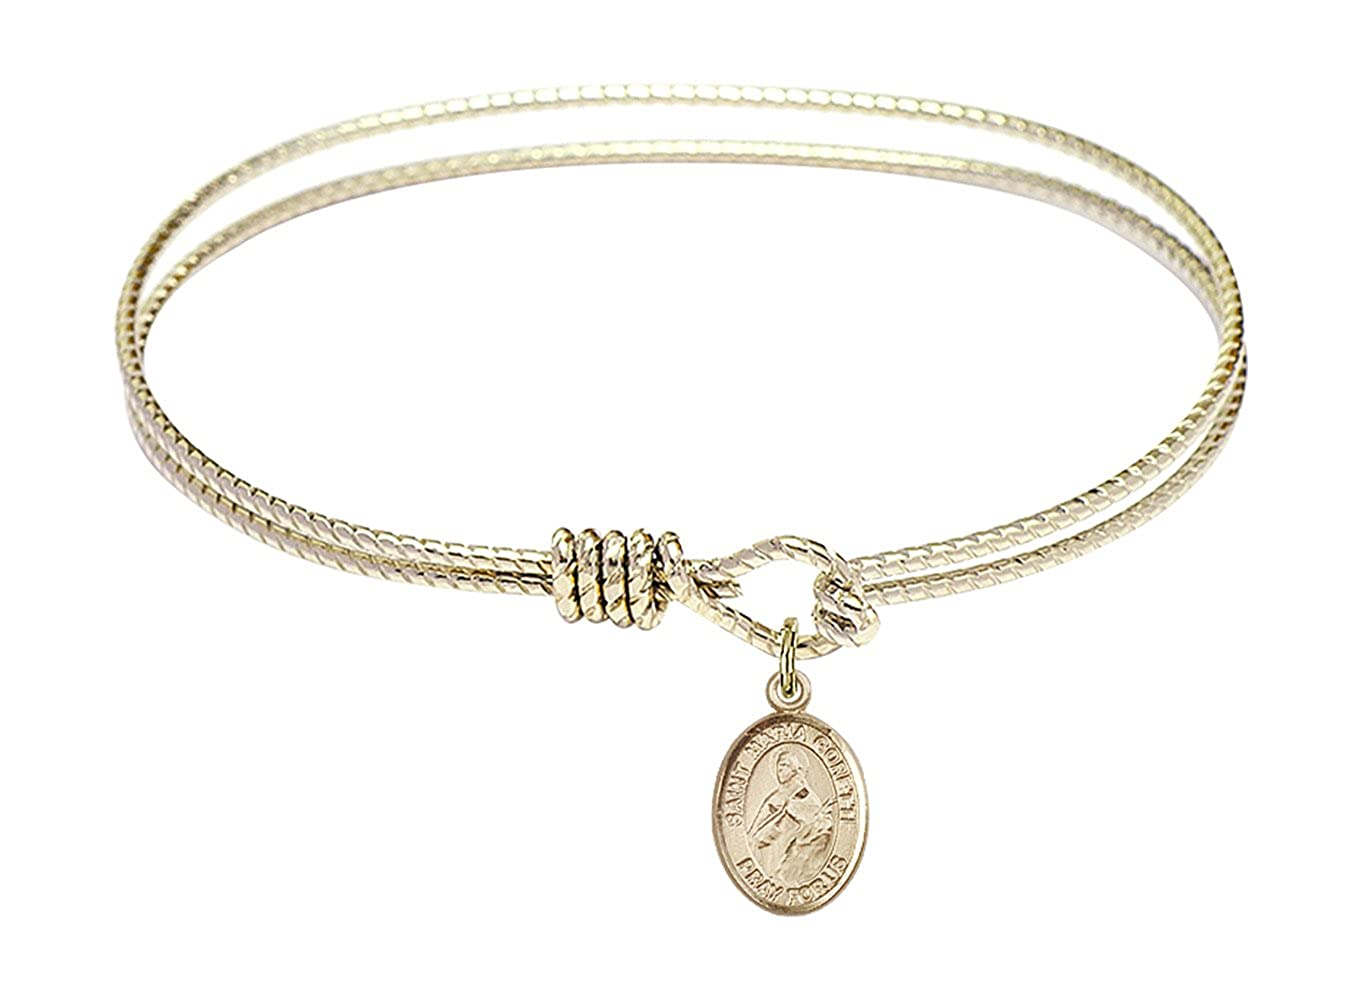 DiamondJewelryNY Eye Hook Bangle Bracelet with a St Maria Goretti Charm.